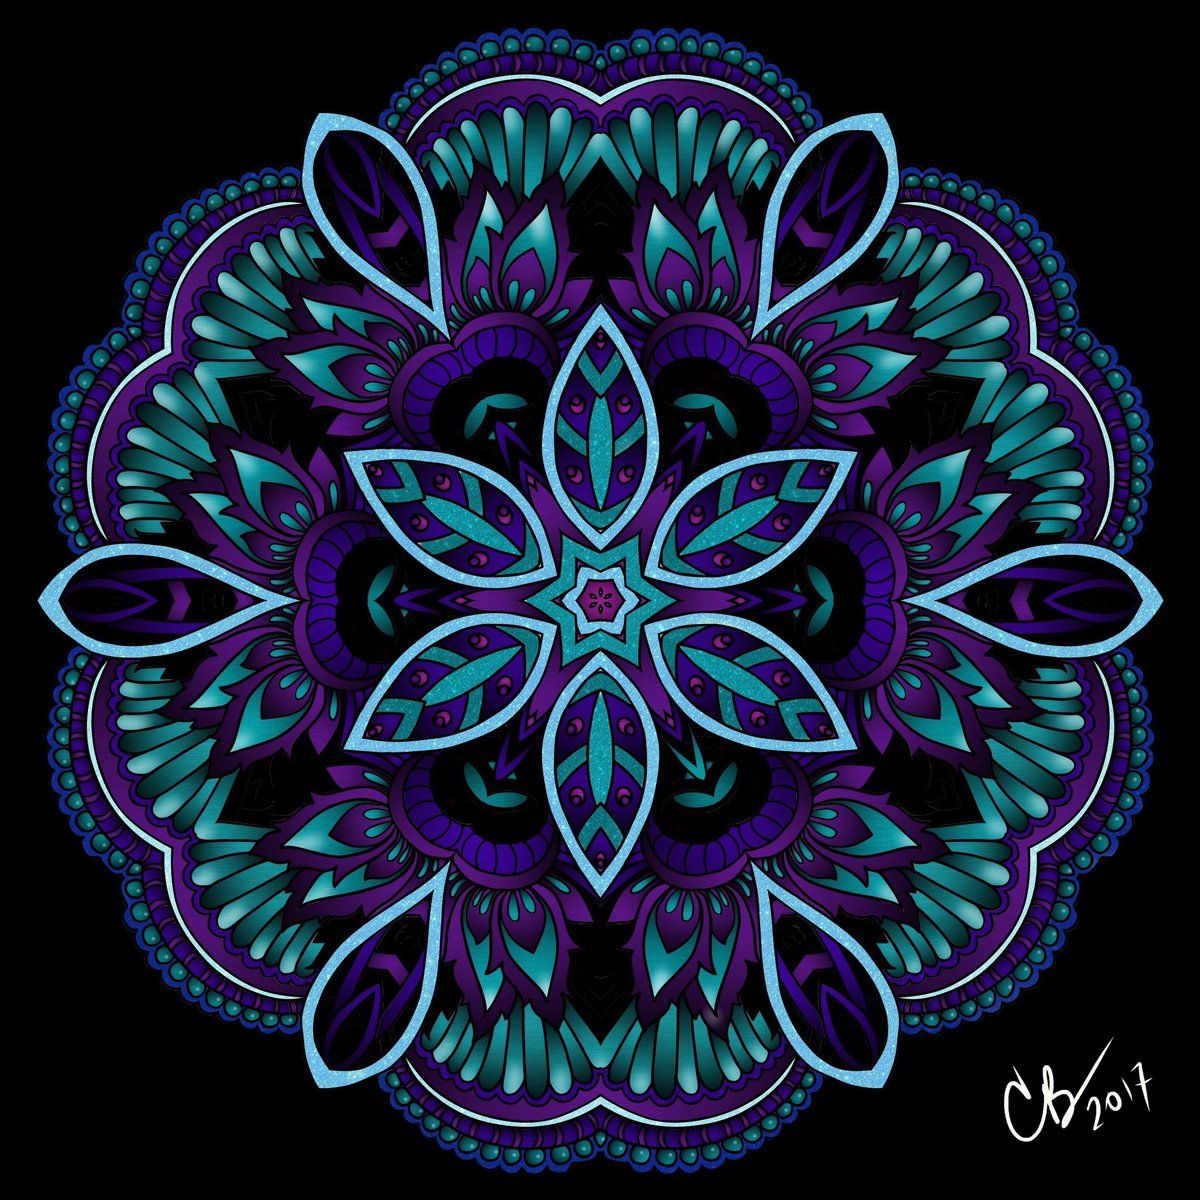 Whoa Check Out This Beautiful Glowing Mandala Colored By